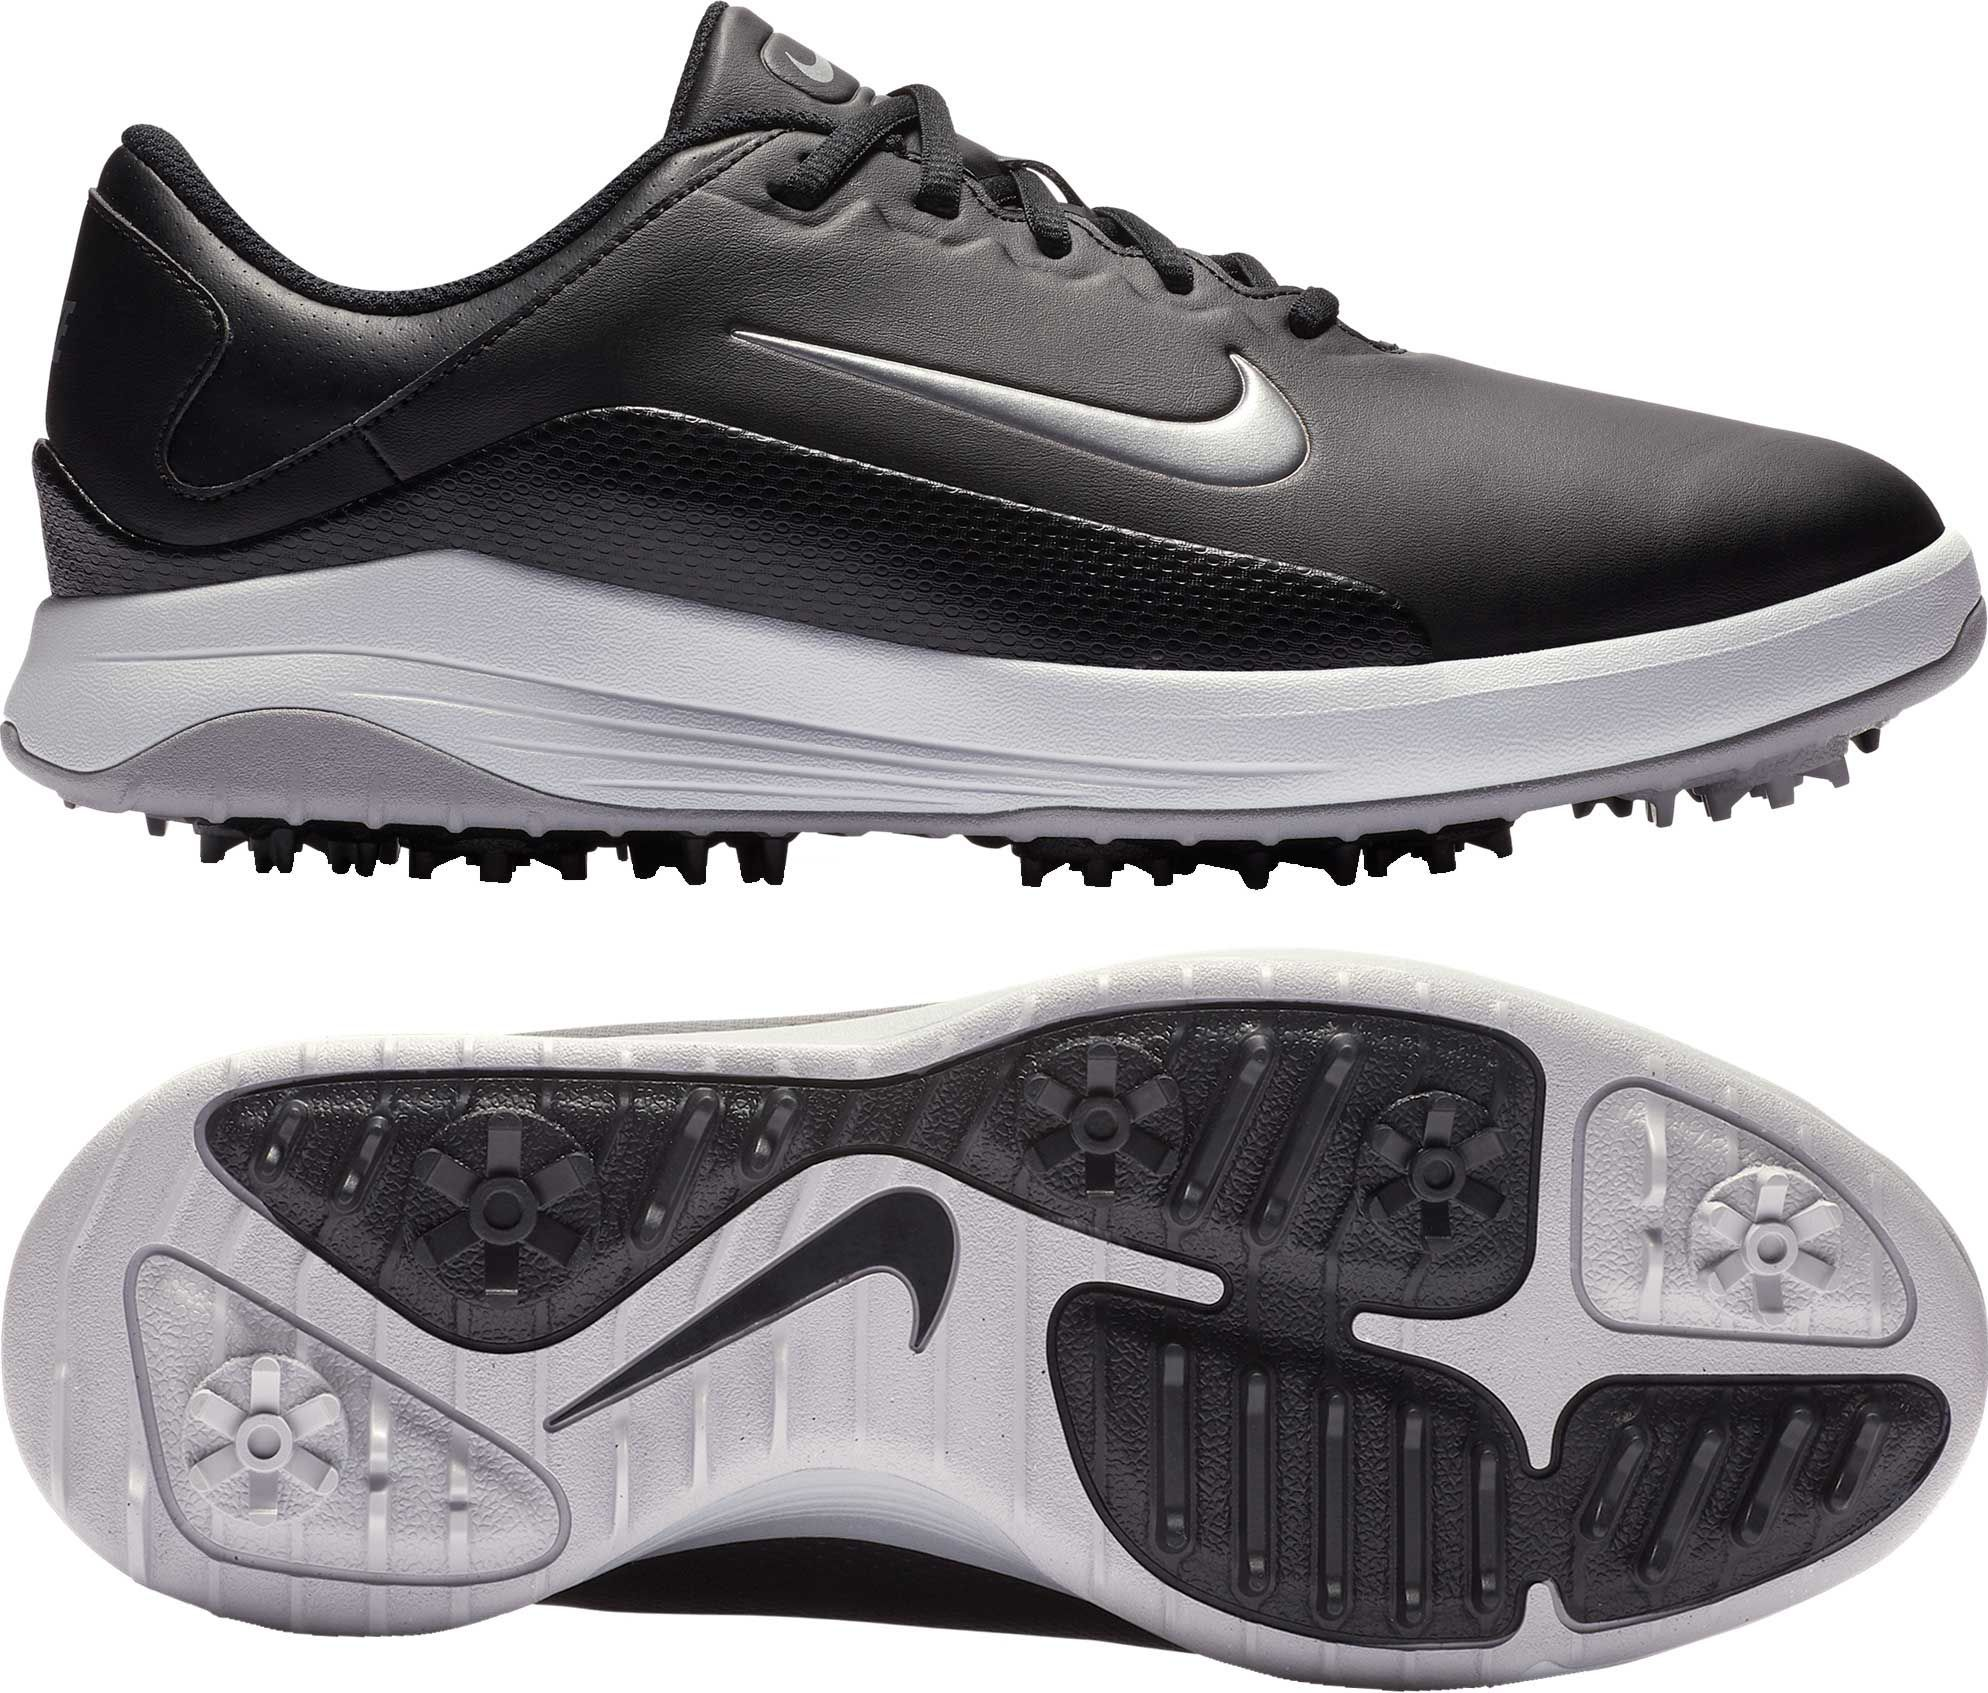 Nike Men S Vapor Golf Shoes Golf Shoes Nike Men Golf Club Fitting